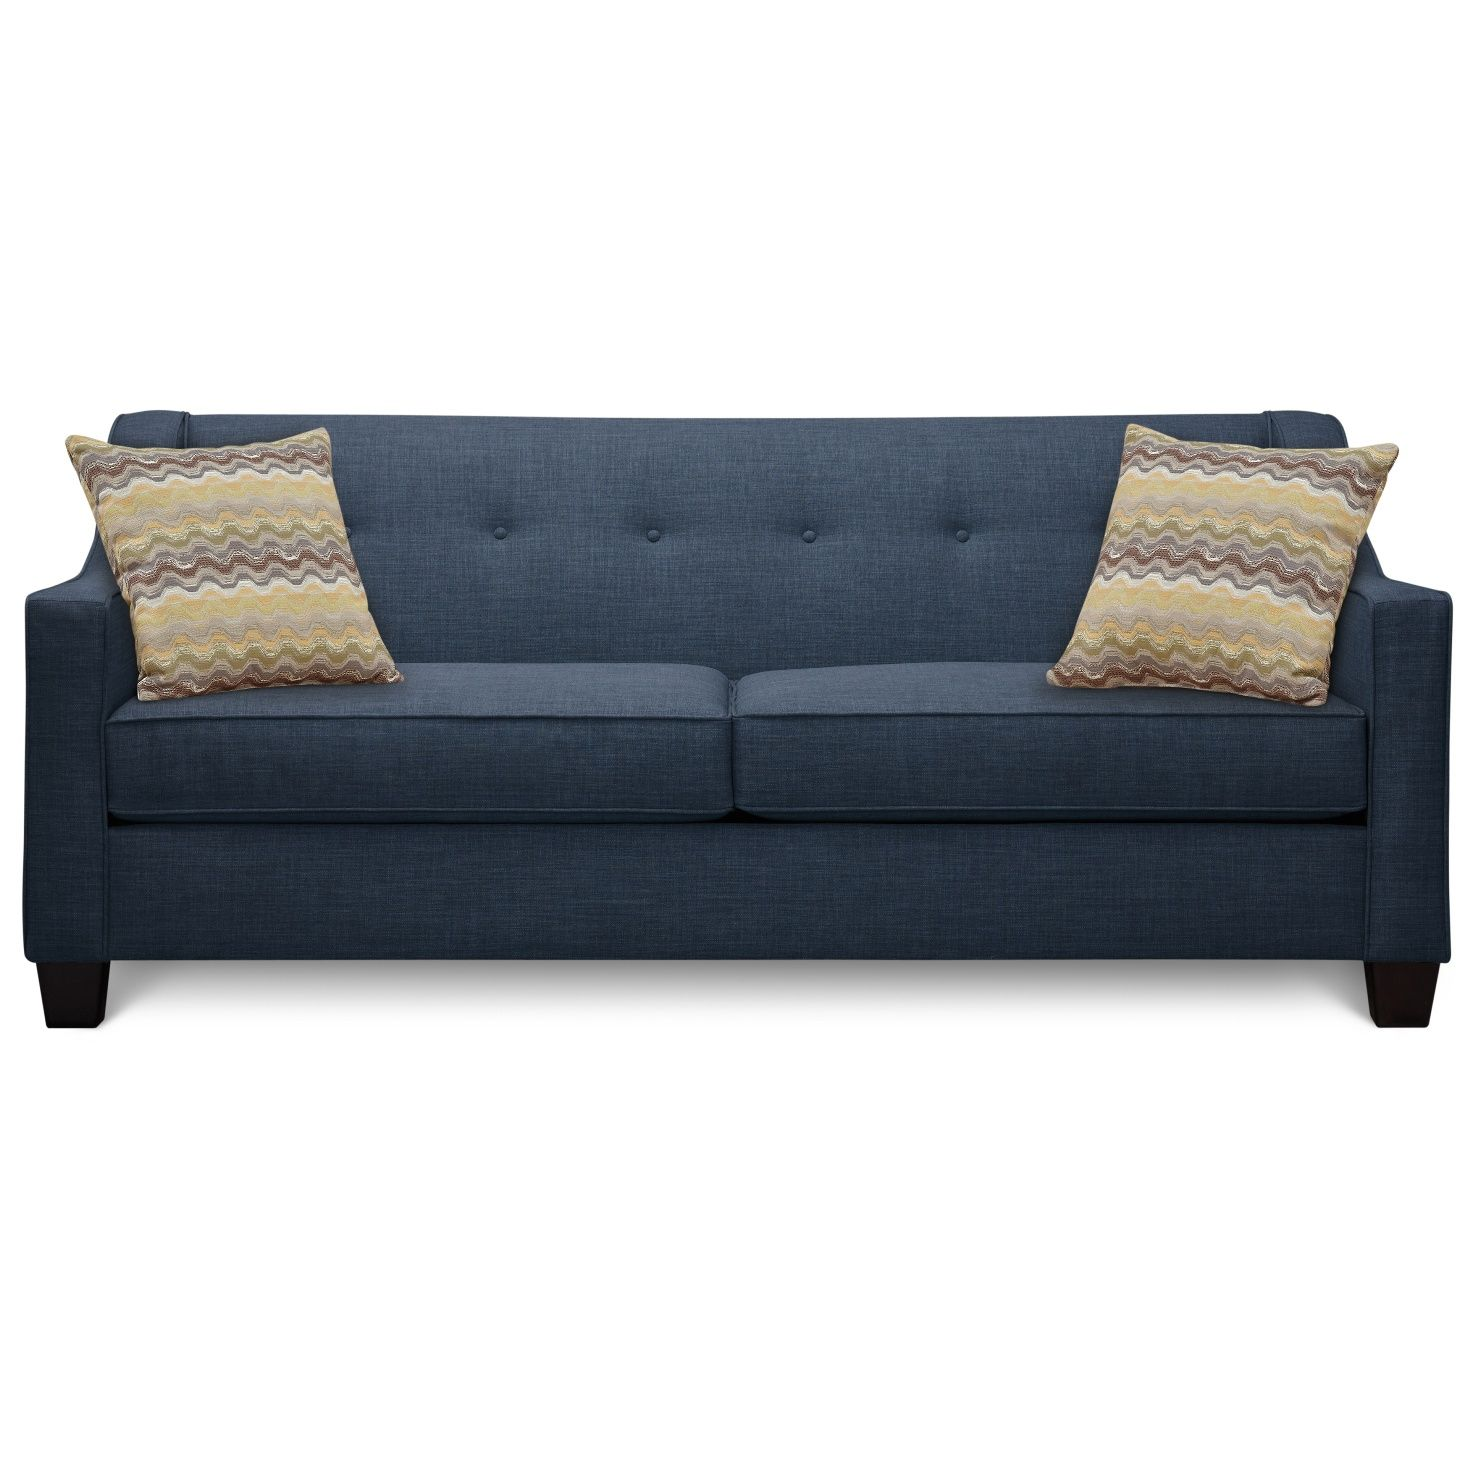 - Cool Denim Sofas For Unique And Gorgeous Home Look Leather